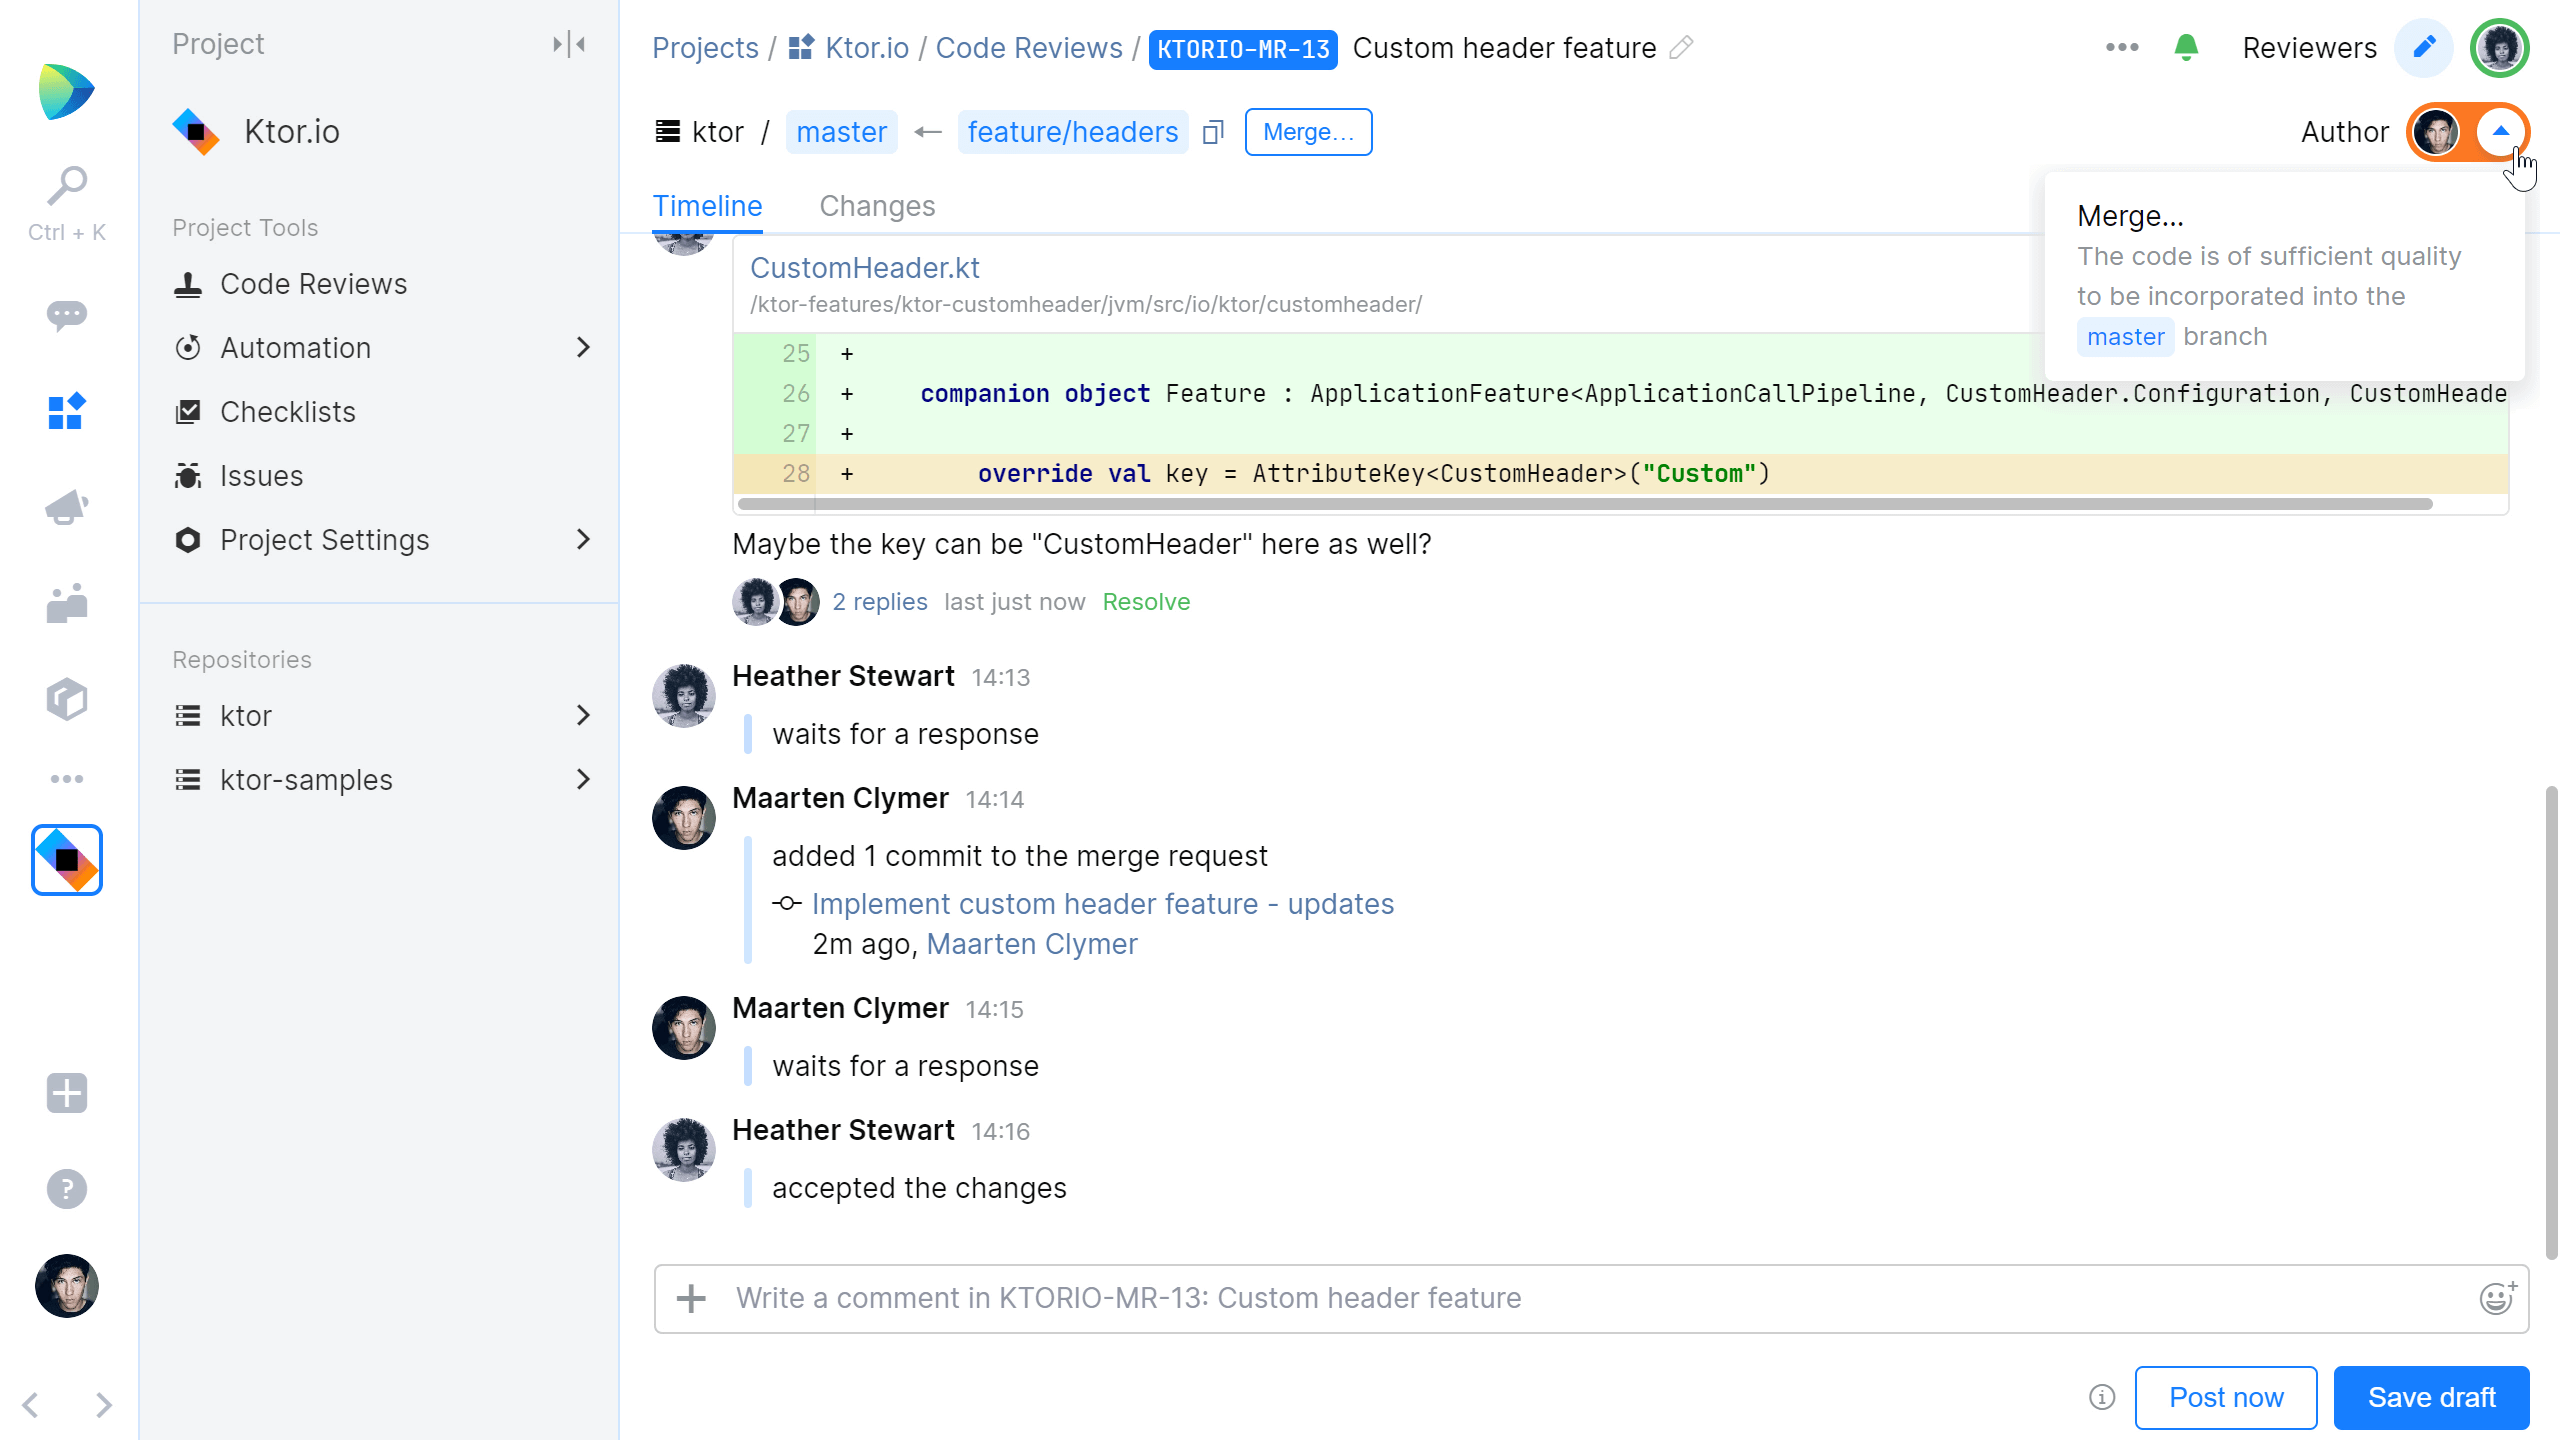 Merge changes once all code looks good and comments are resolved